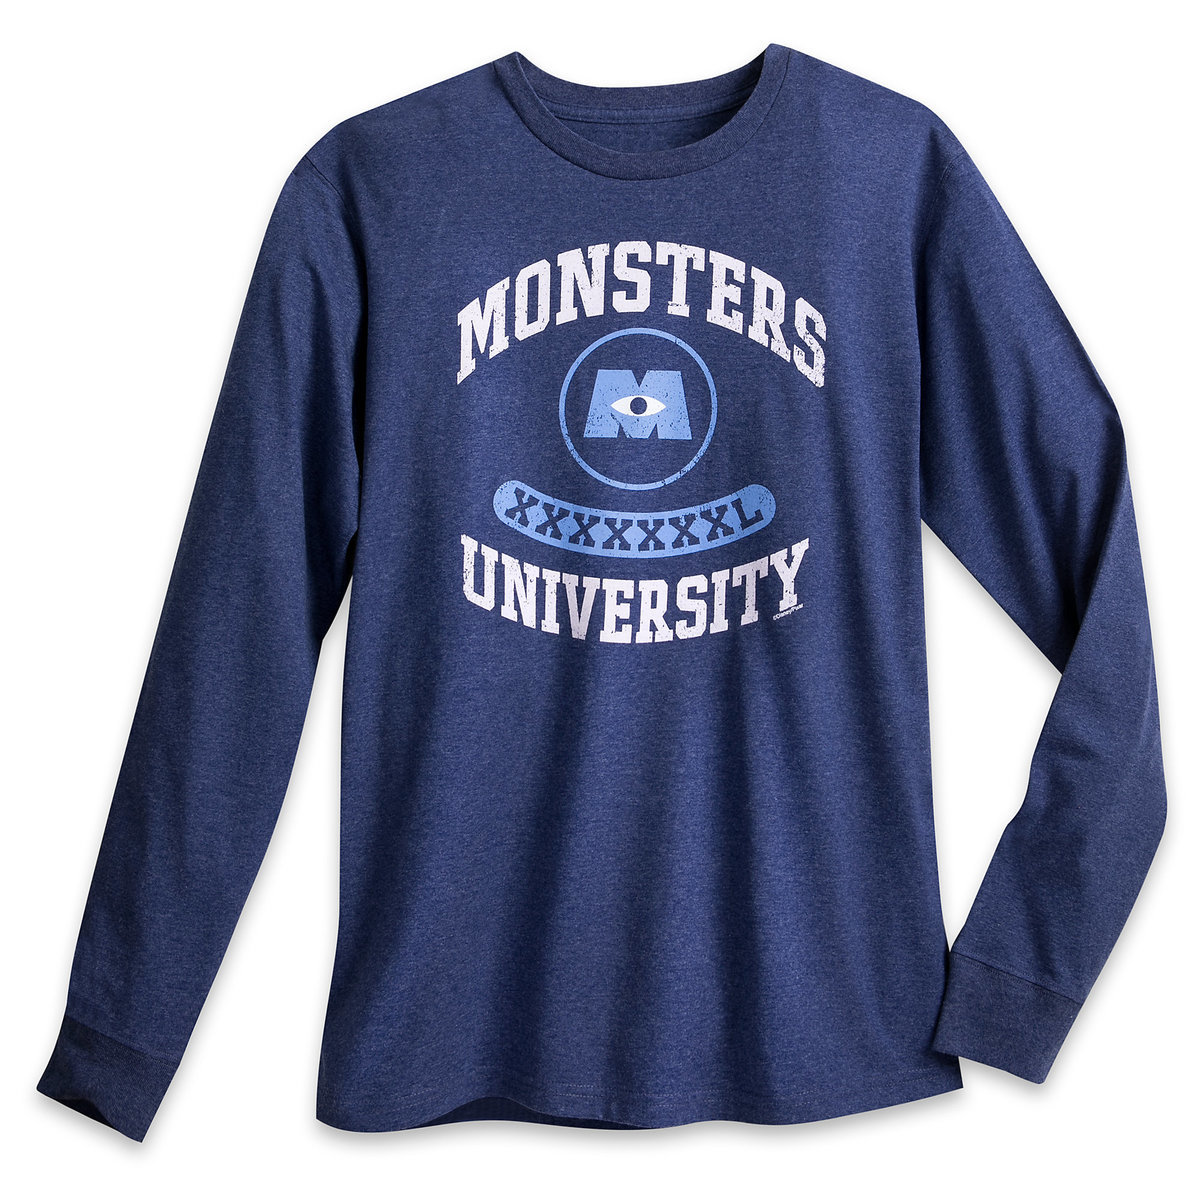 Monsters University Long Sleeve Tee for Men